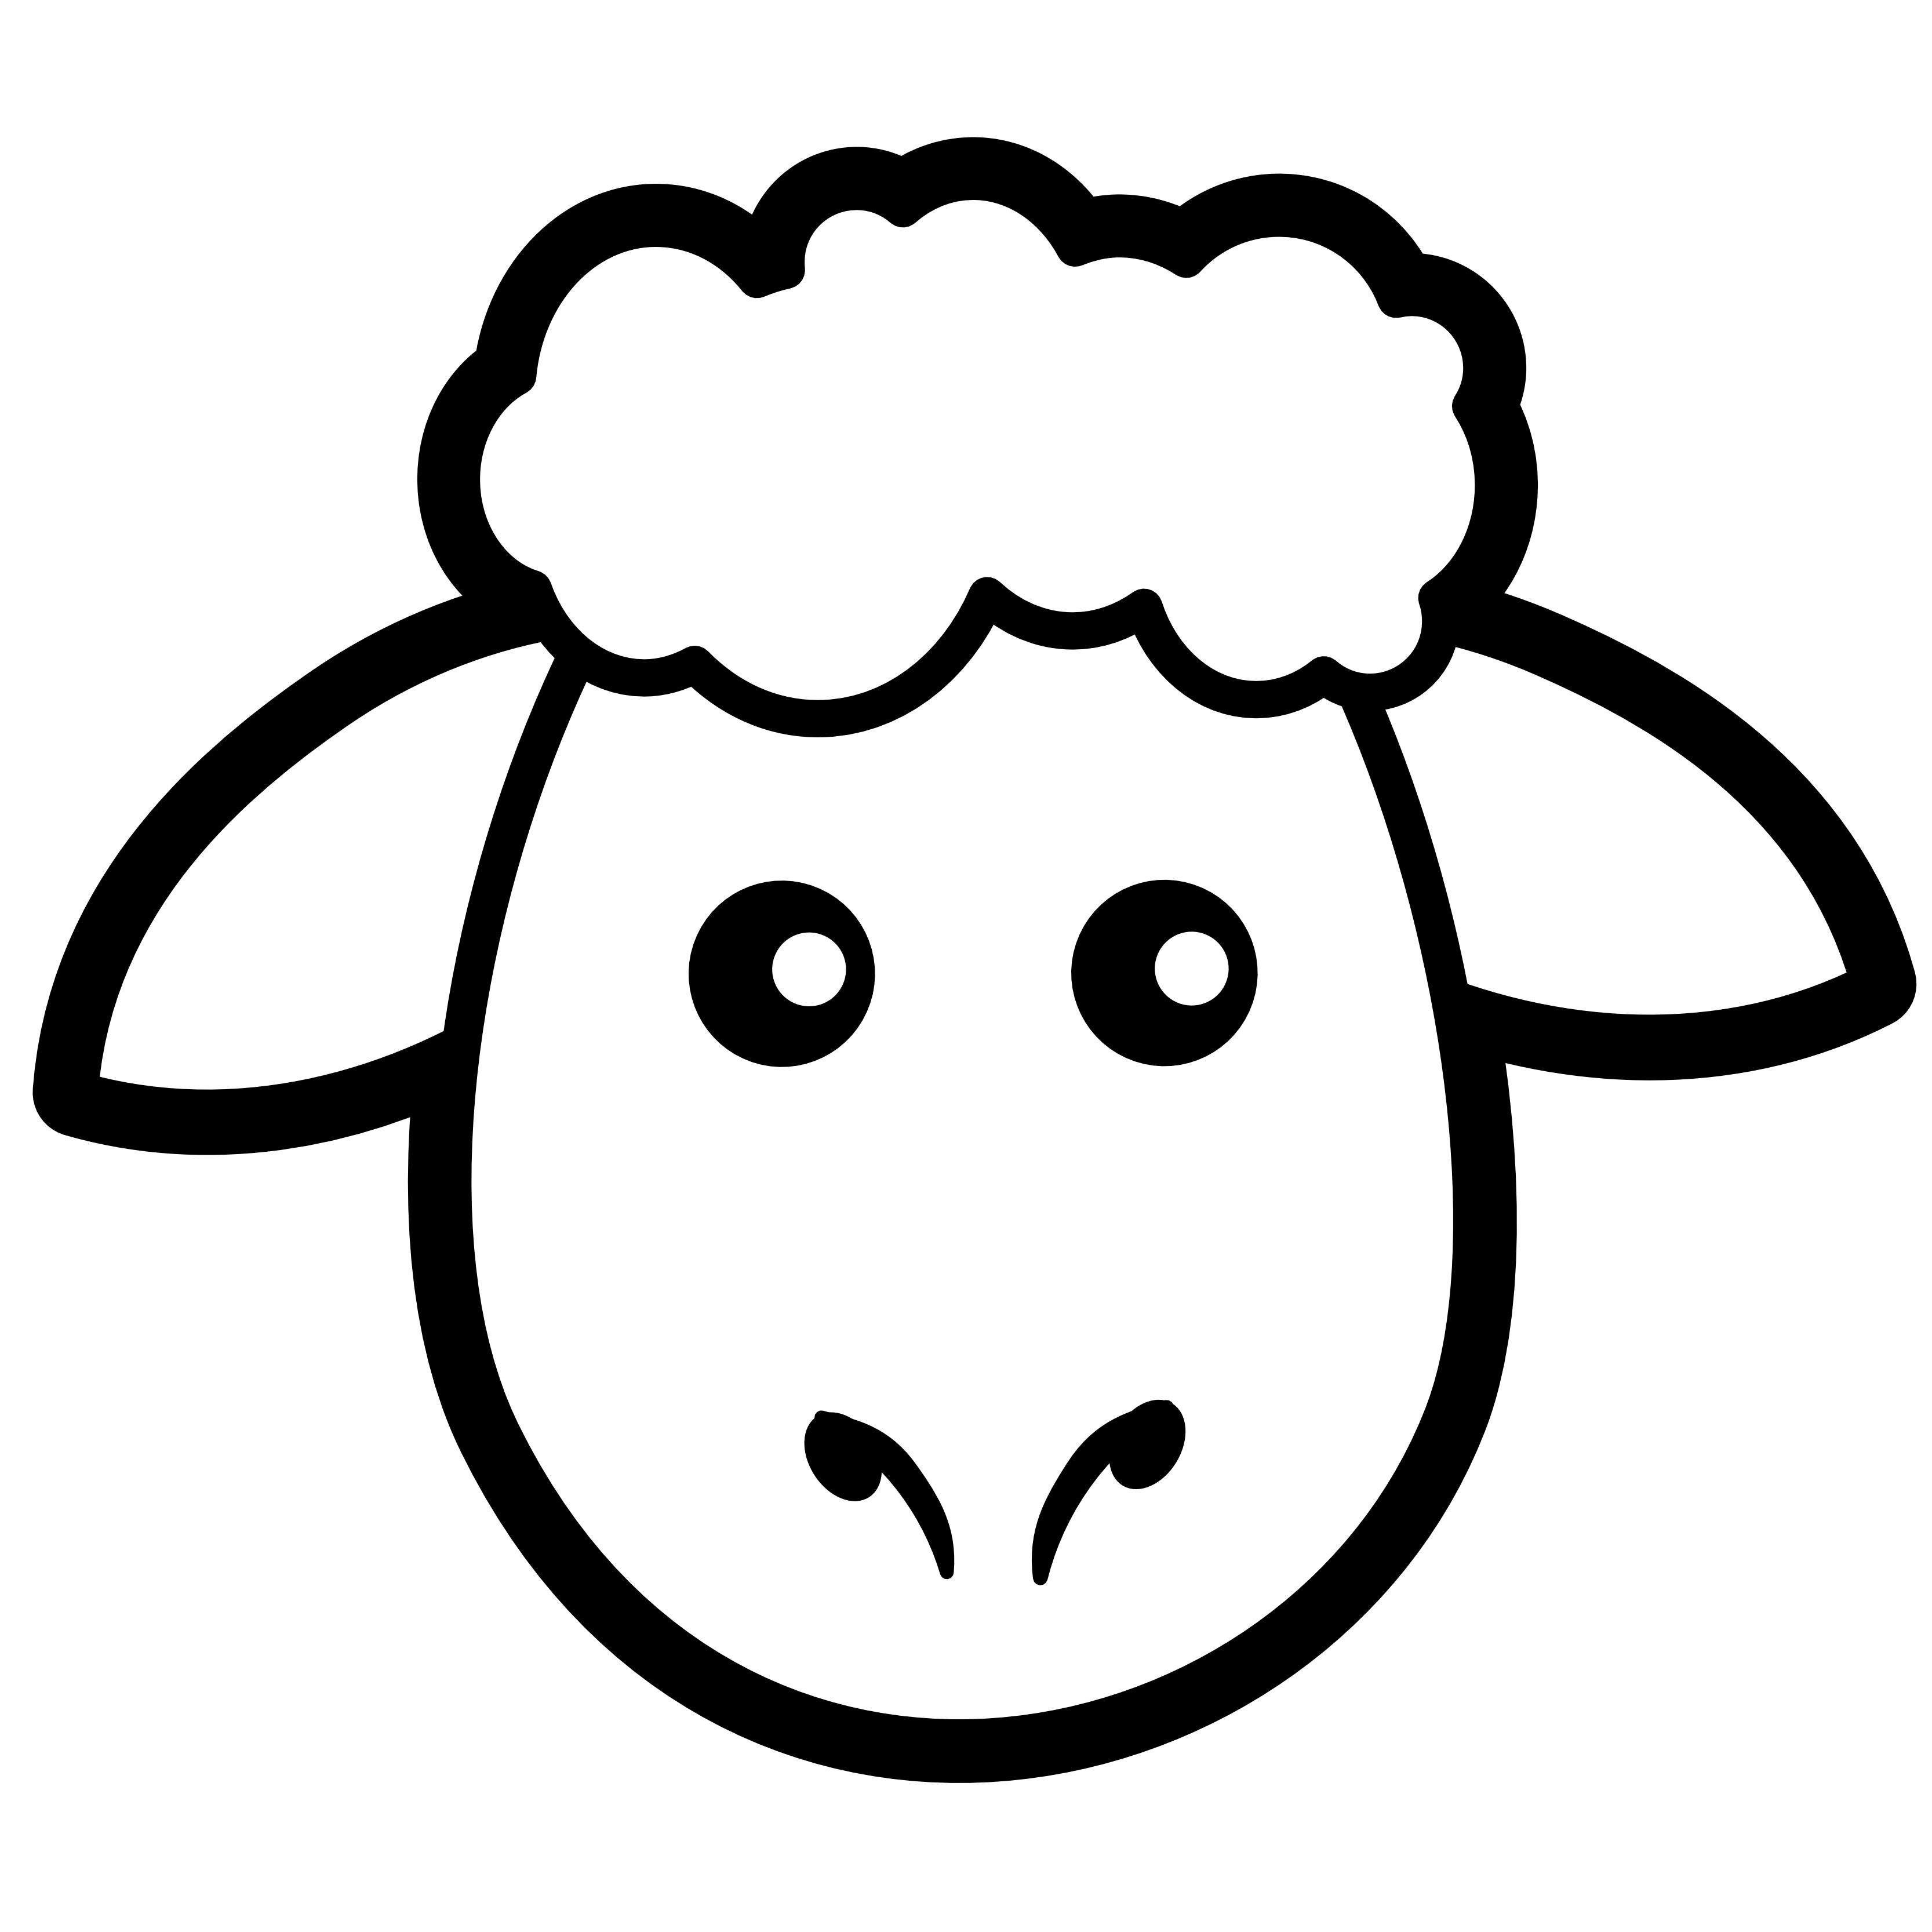 Barn clipart coloring page. Sheep black and white